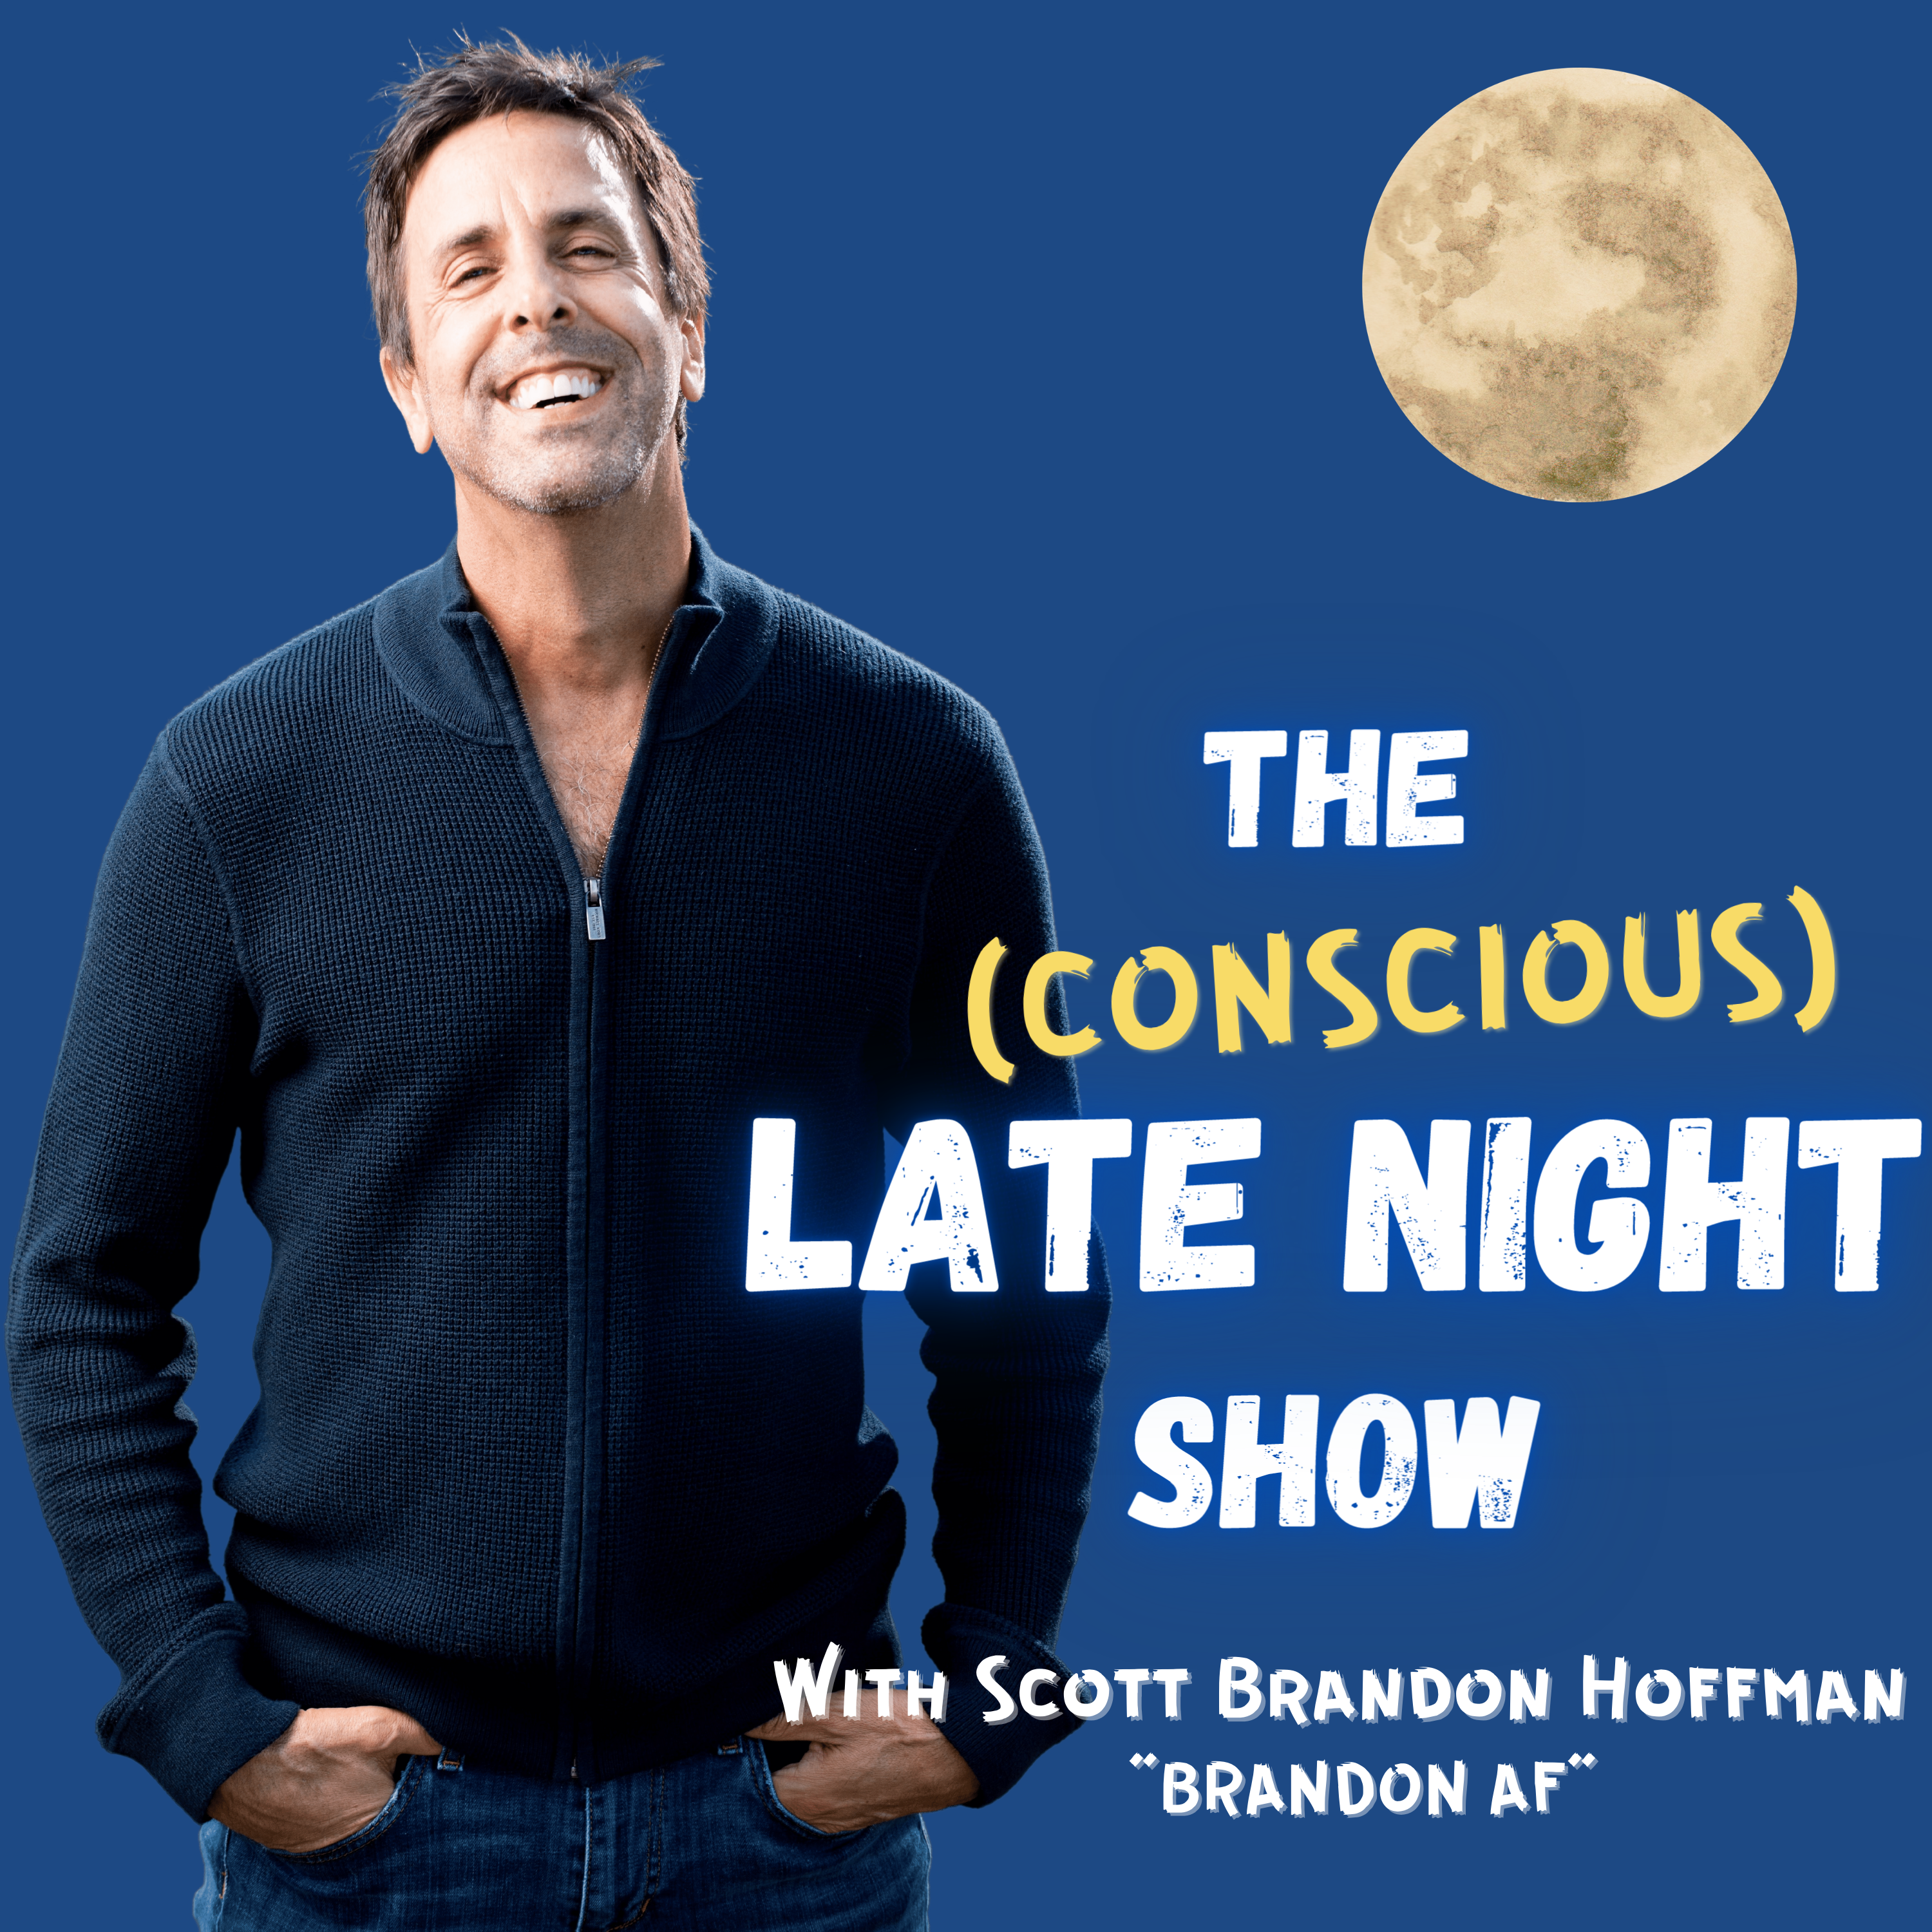 THE CONSCIOUS LATE NIGHT SHOW! Logo